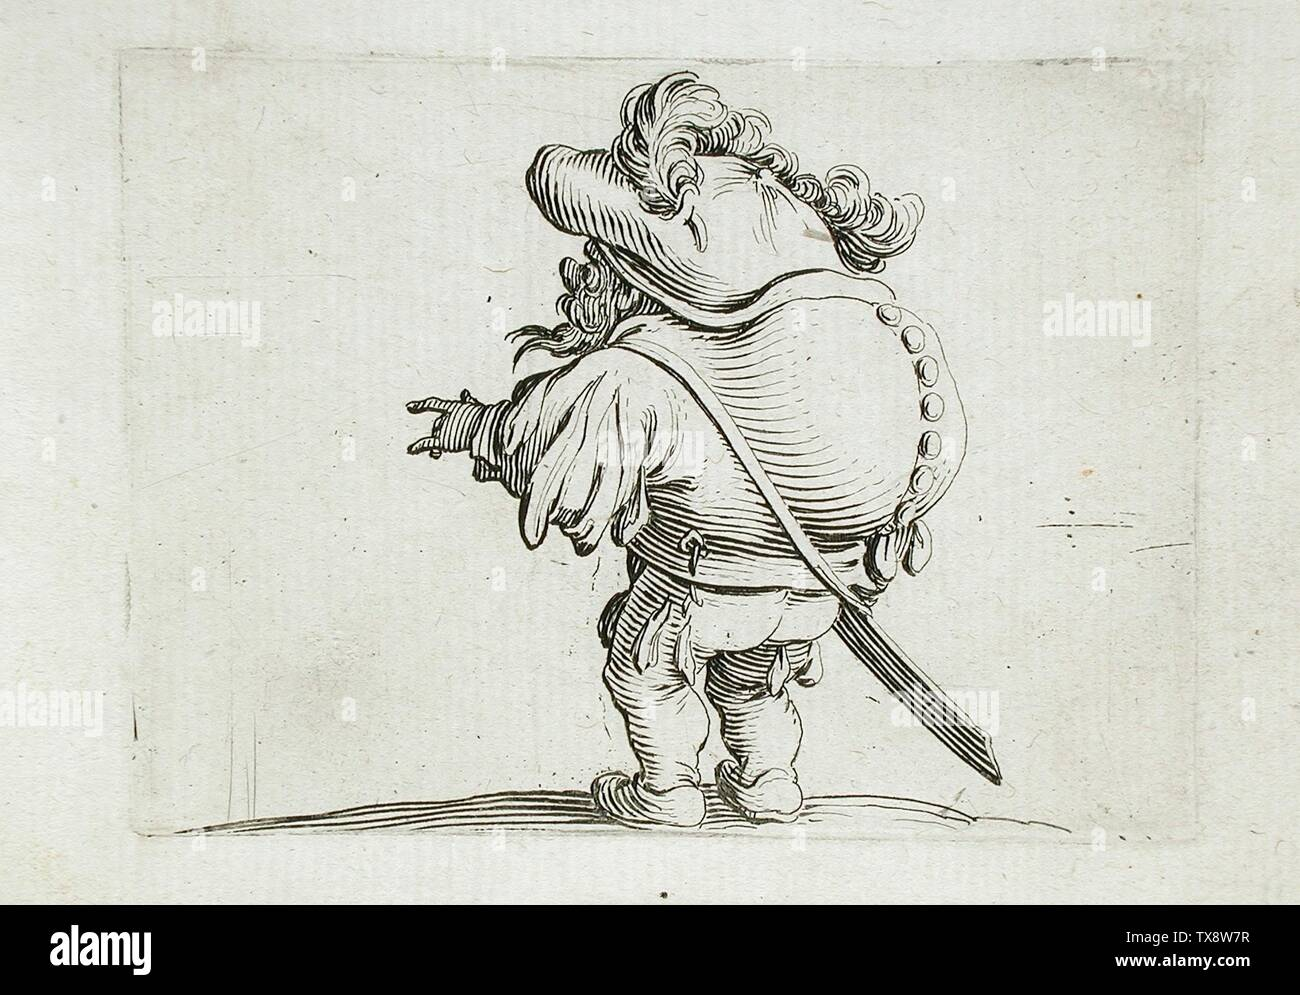 'Man with a Drooping Belly and a Very Grand Hat; English:  France, 1616 Alternate Title: L'homme au Ventre Tombant et au Chapeau Très Éleve Series: Les Gobbi, plate 5 Prints; engravings Etching with engraving Anonymous gift (M.65.26.28) Prints and Drawings; 1616date QS:P571,+1616-00-00T00:00:00Z/9; ' - Stock Image